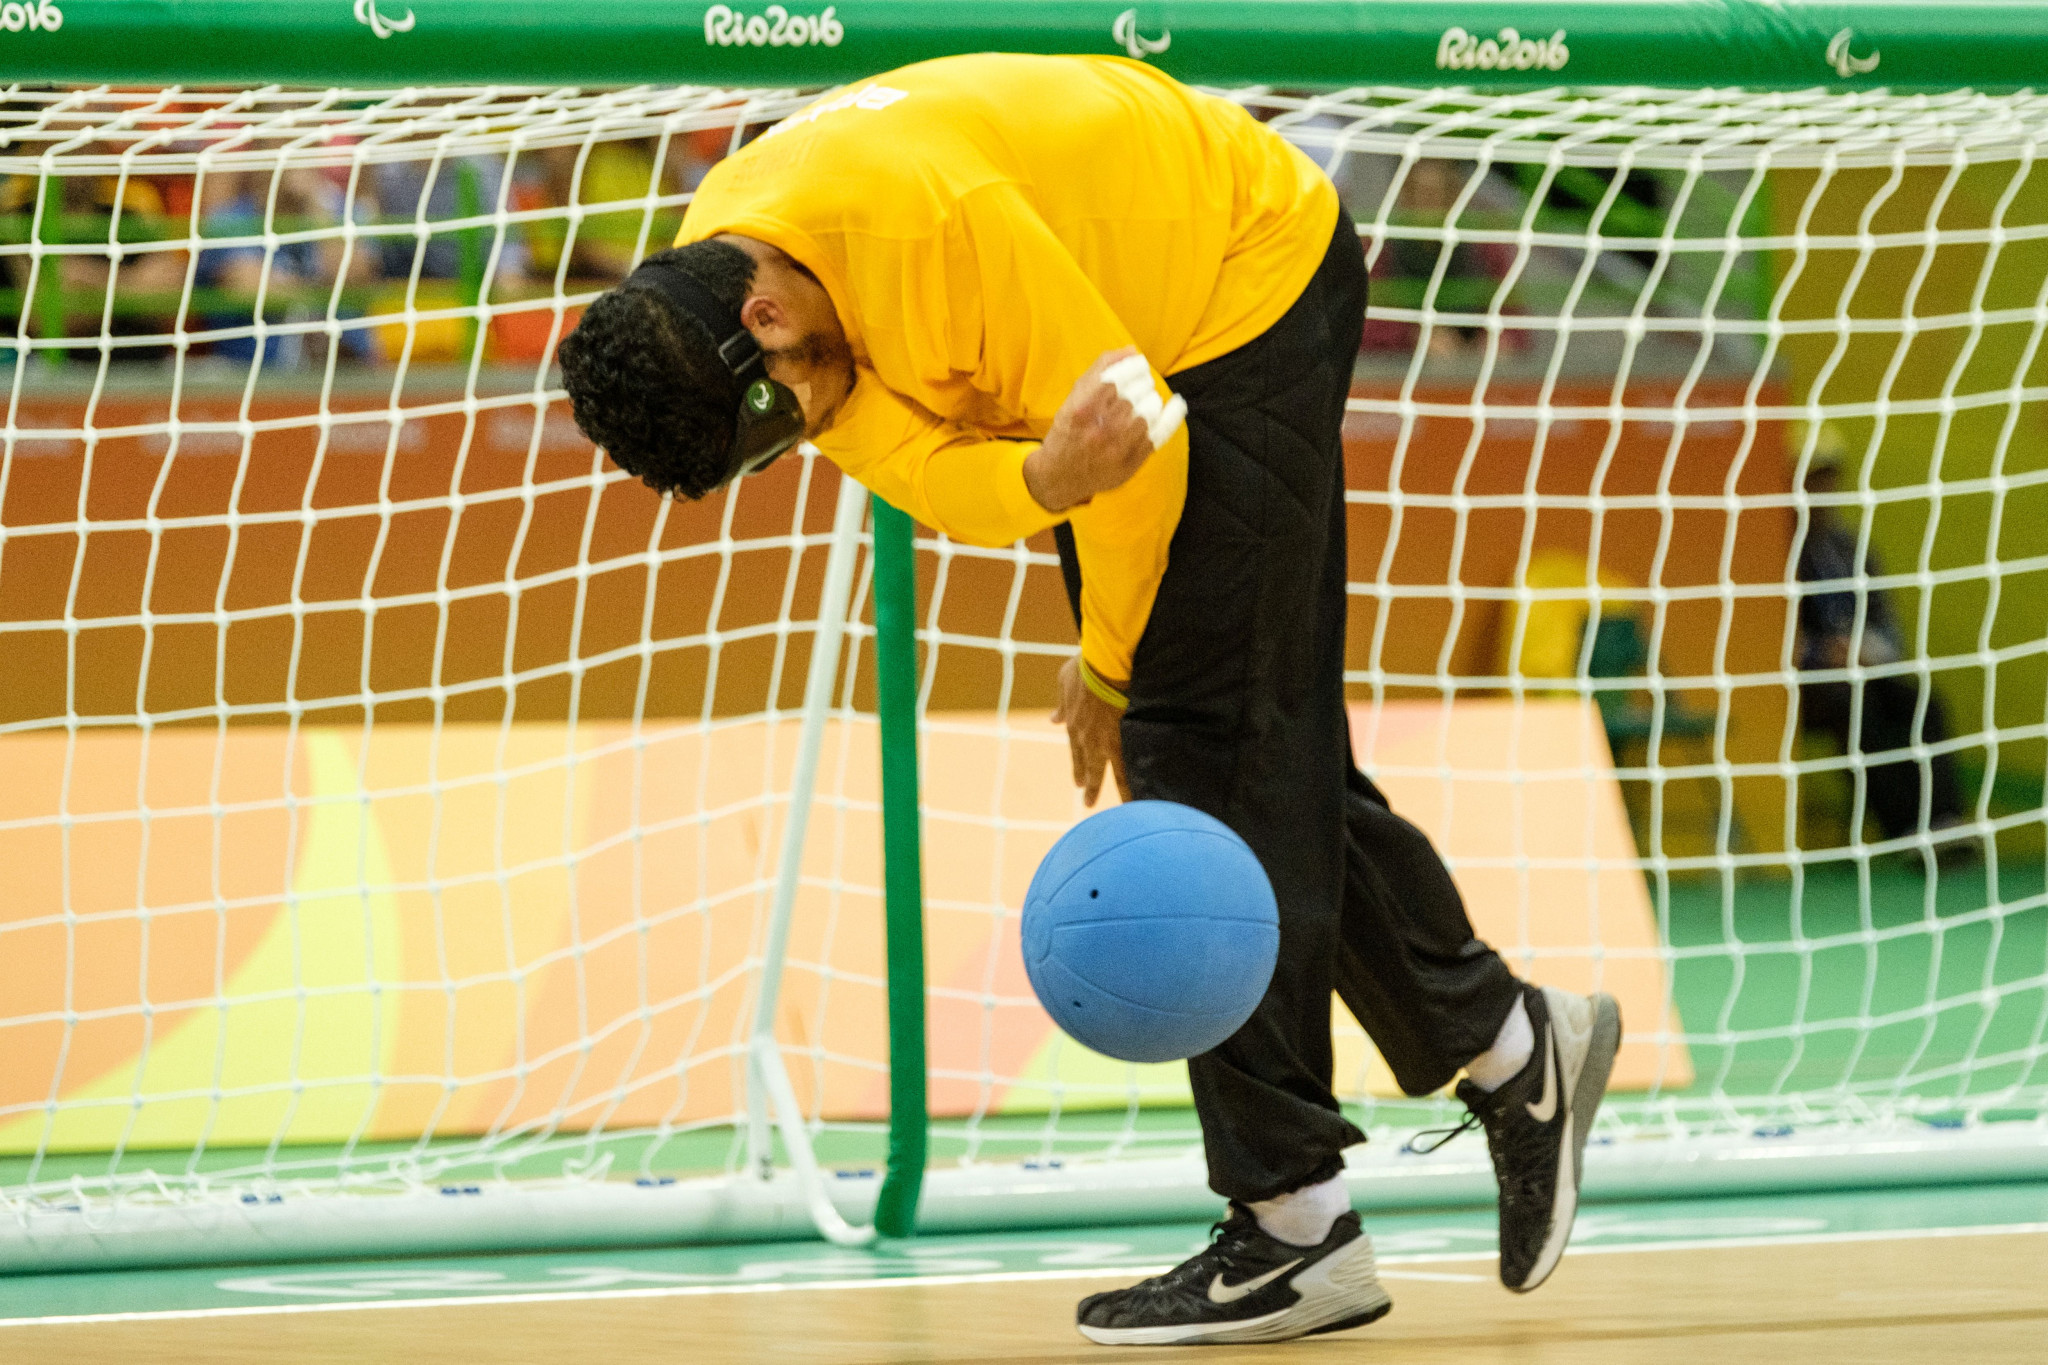 World champions Brazil will face Paralympic gold medallists Lithuania in the group stage of the Tokyo 2020 goalball tournament ©Getty Images